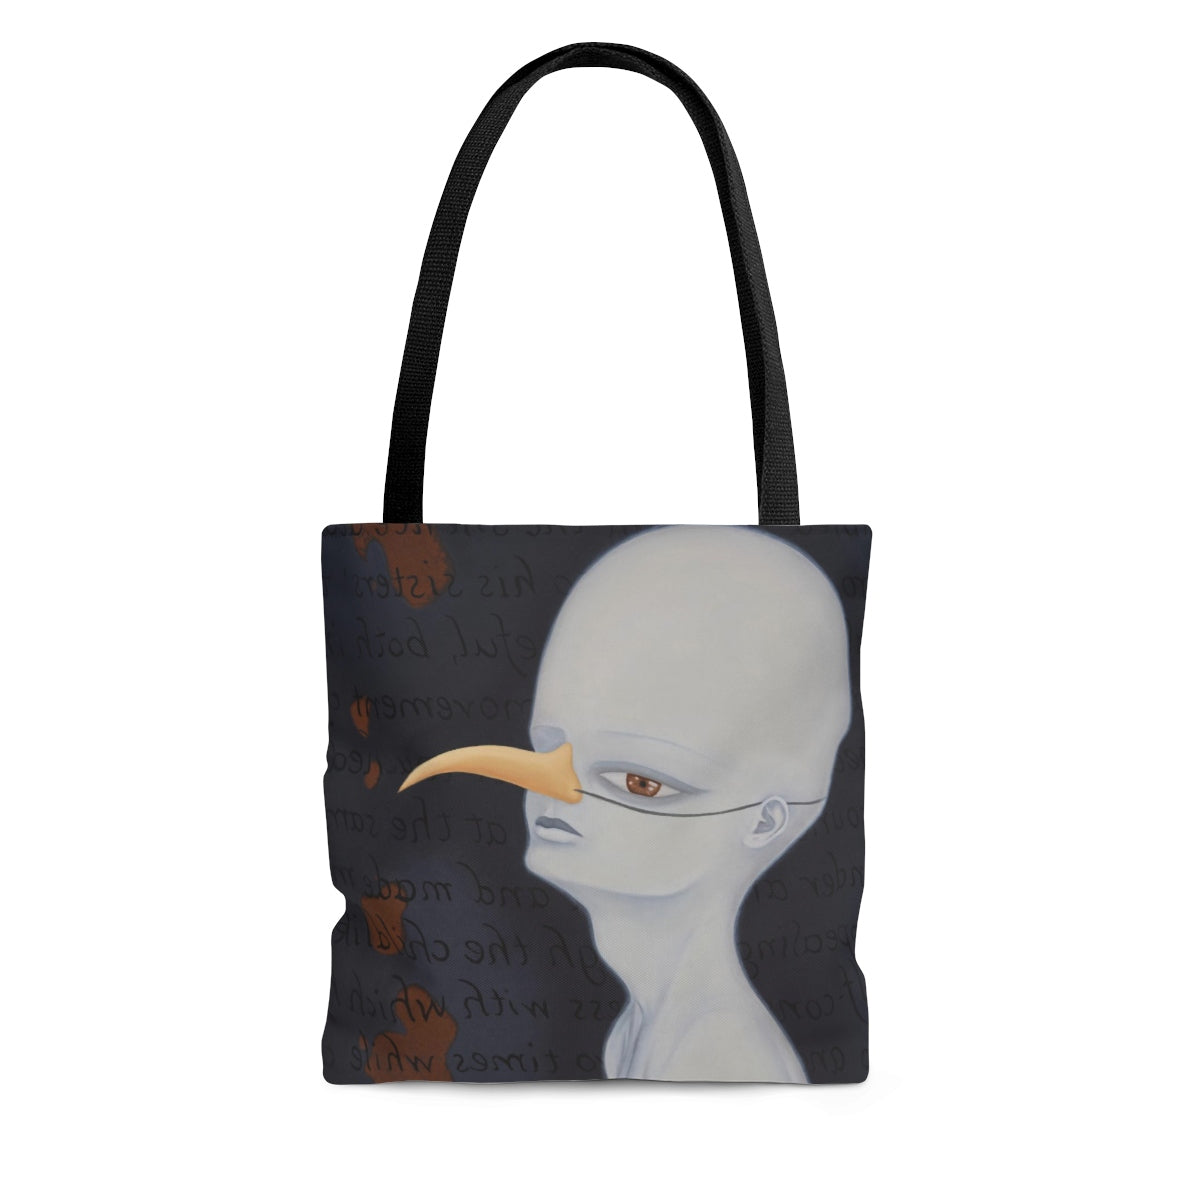 Another Lover Tote Bag